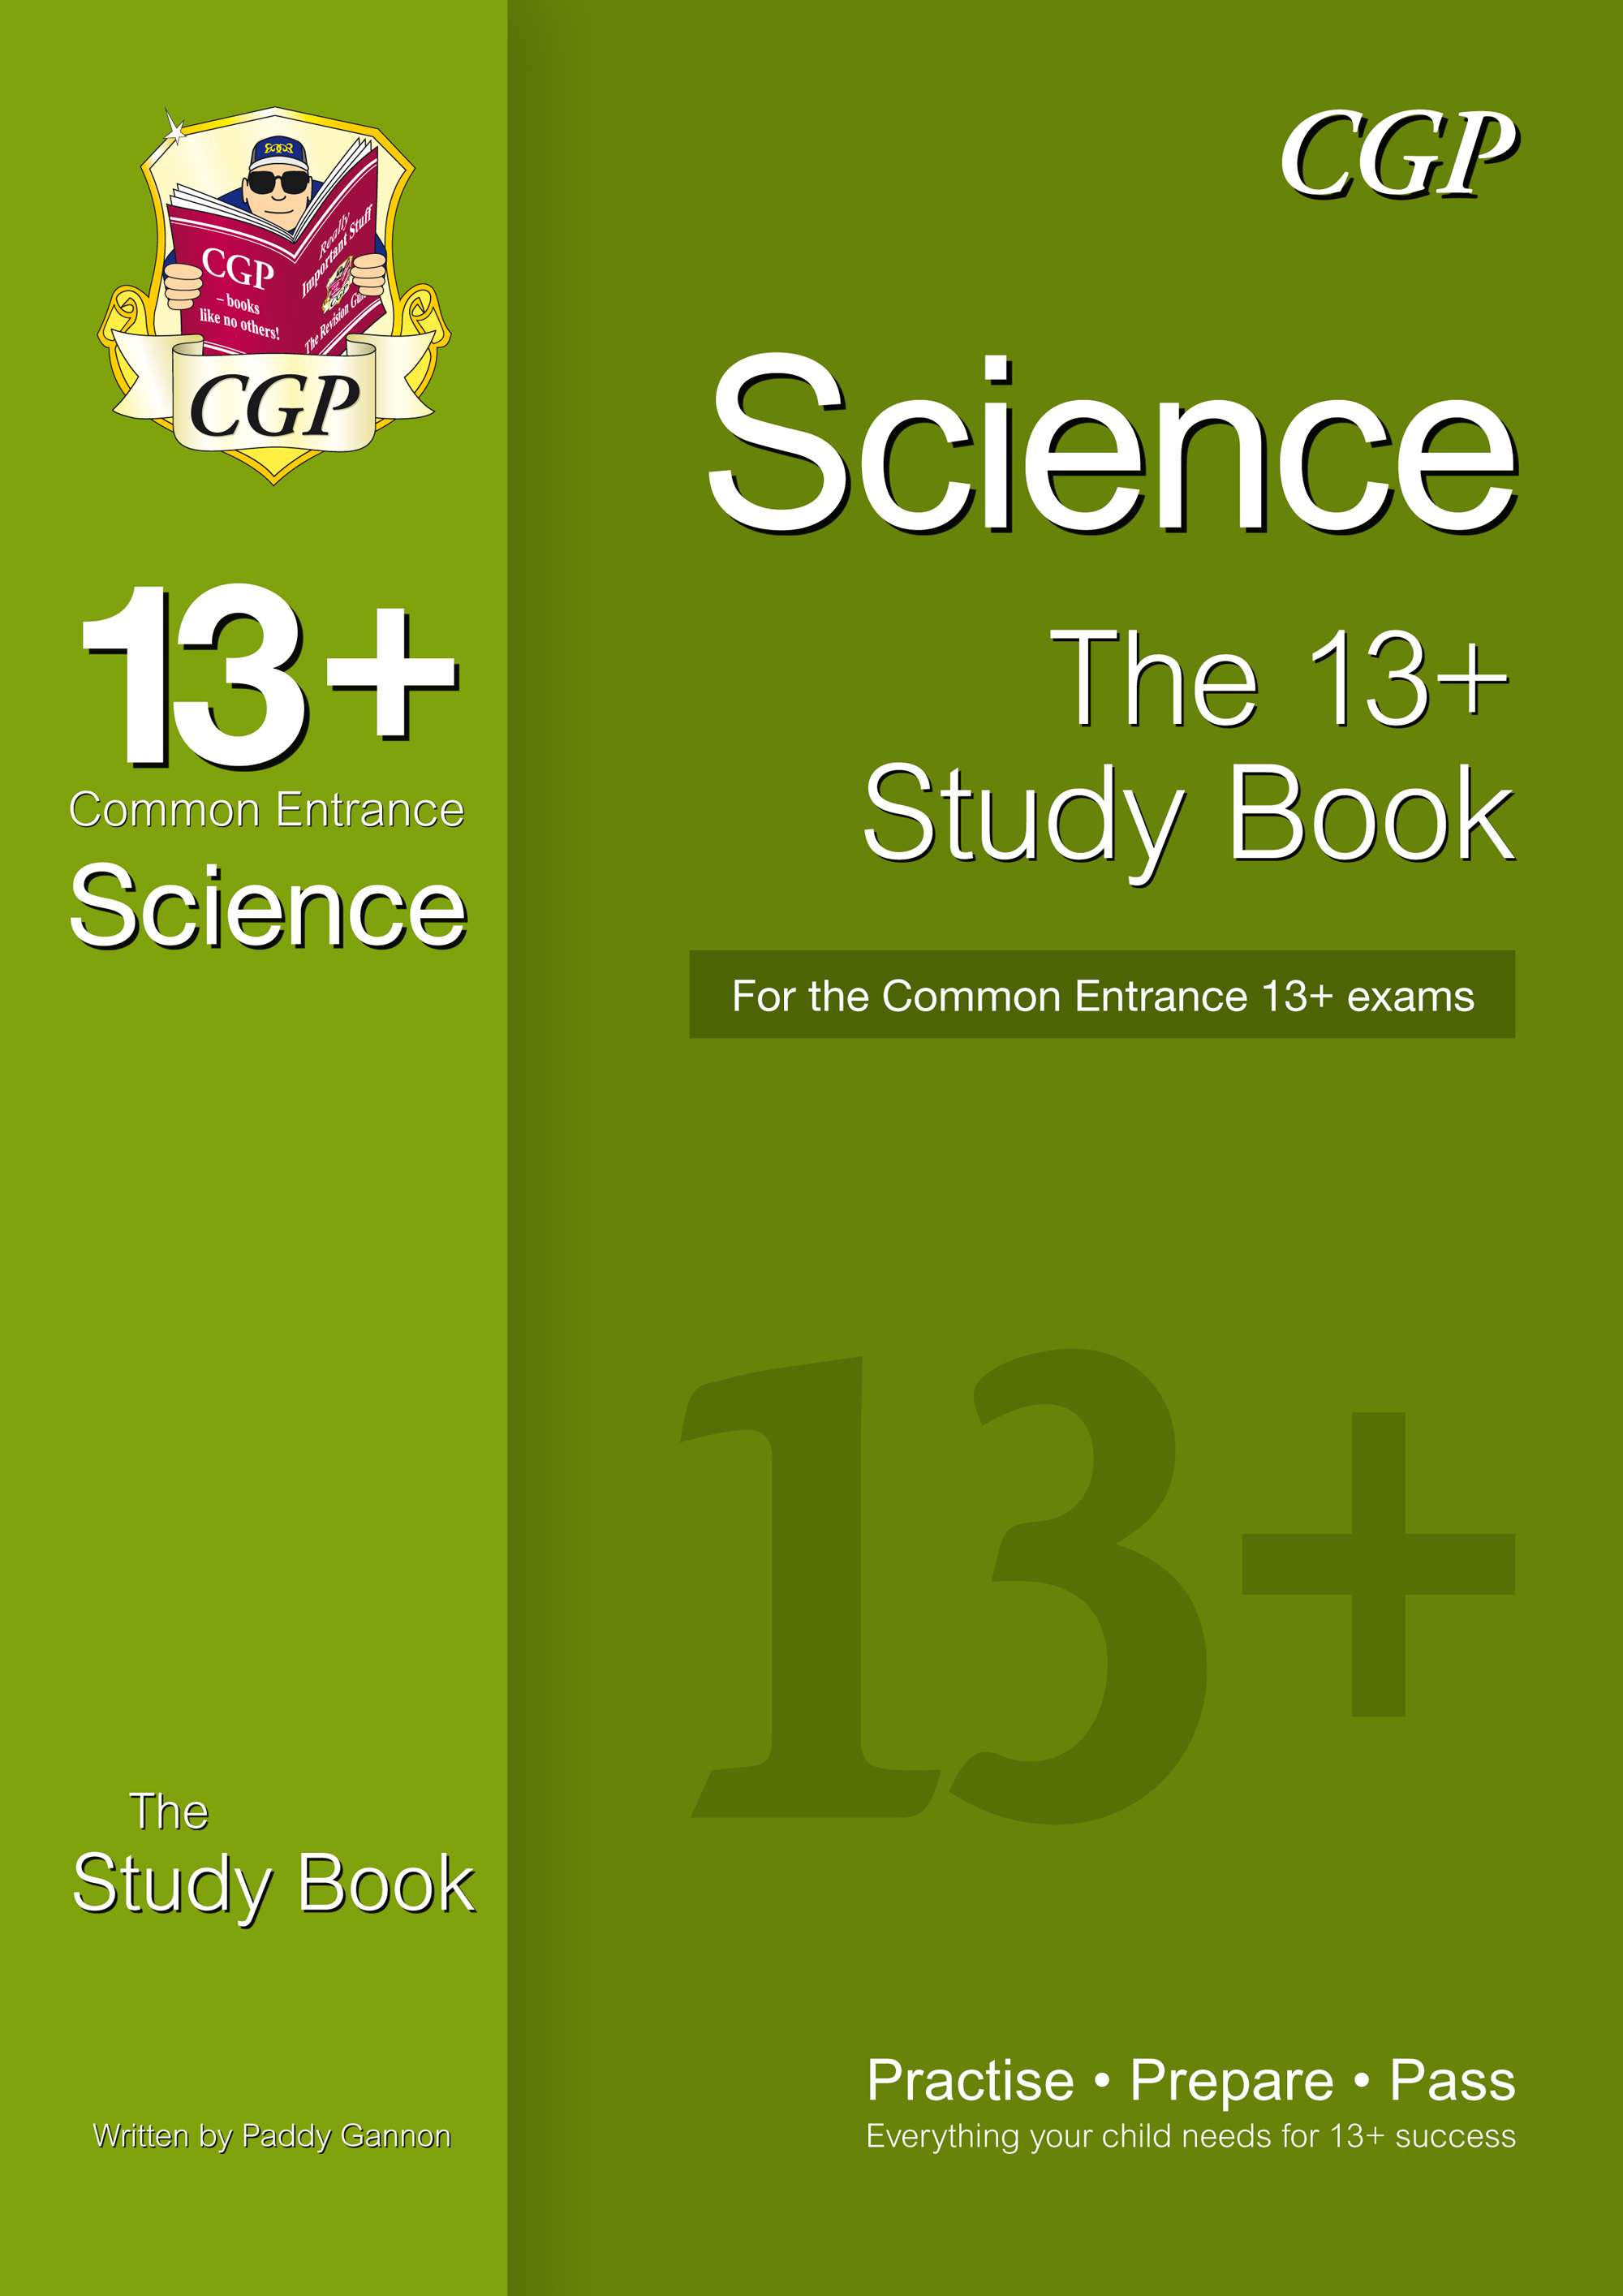 SIRT3 - 13+ Science Study Book for the Common Entrance Exams